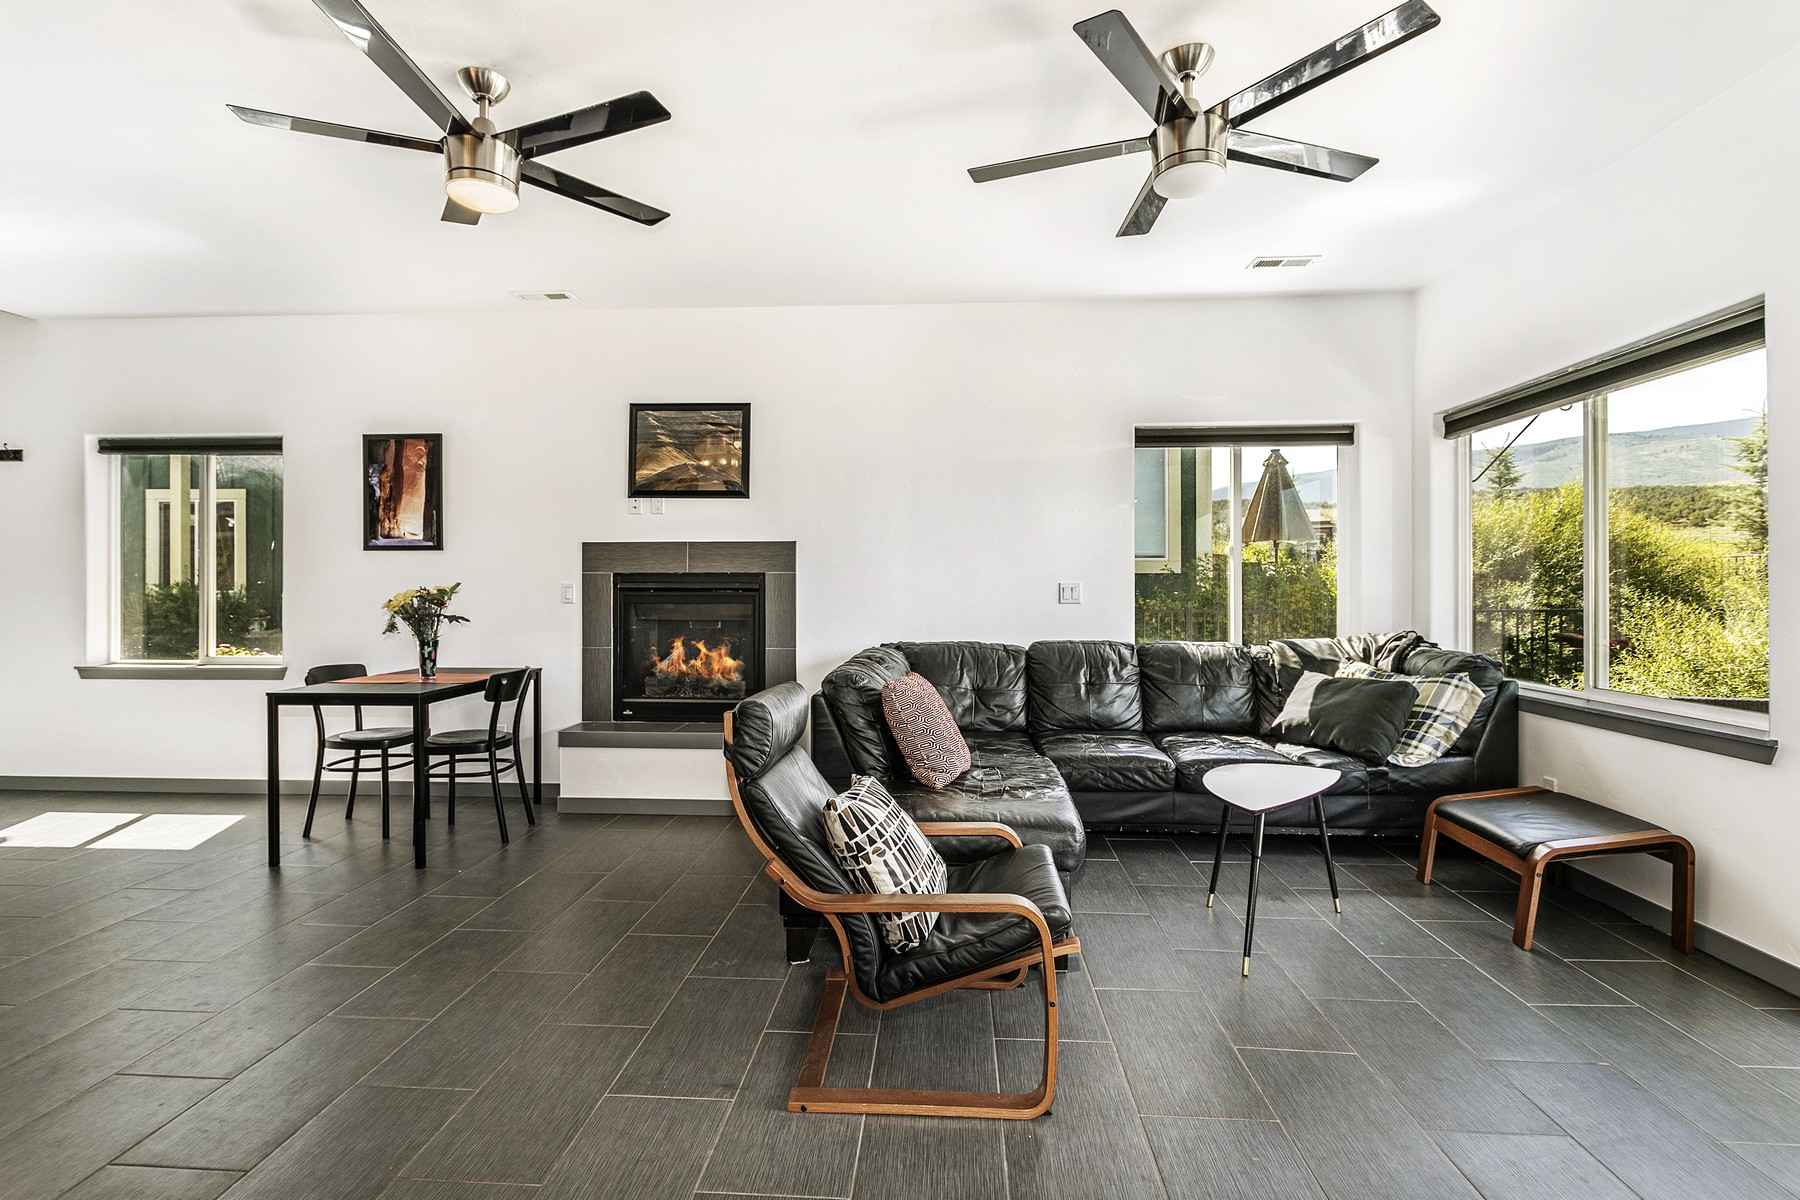 Duplex Homes for Sale at Hawks Nest Duplex 1240 Hawks Nest Lane Gypsum, Colorado 81637 United States